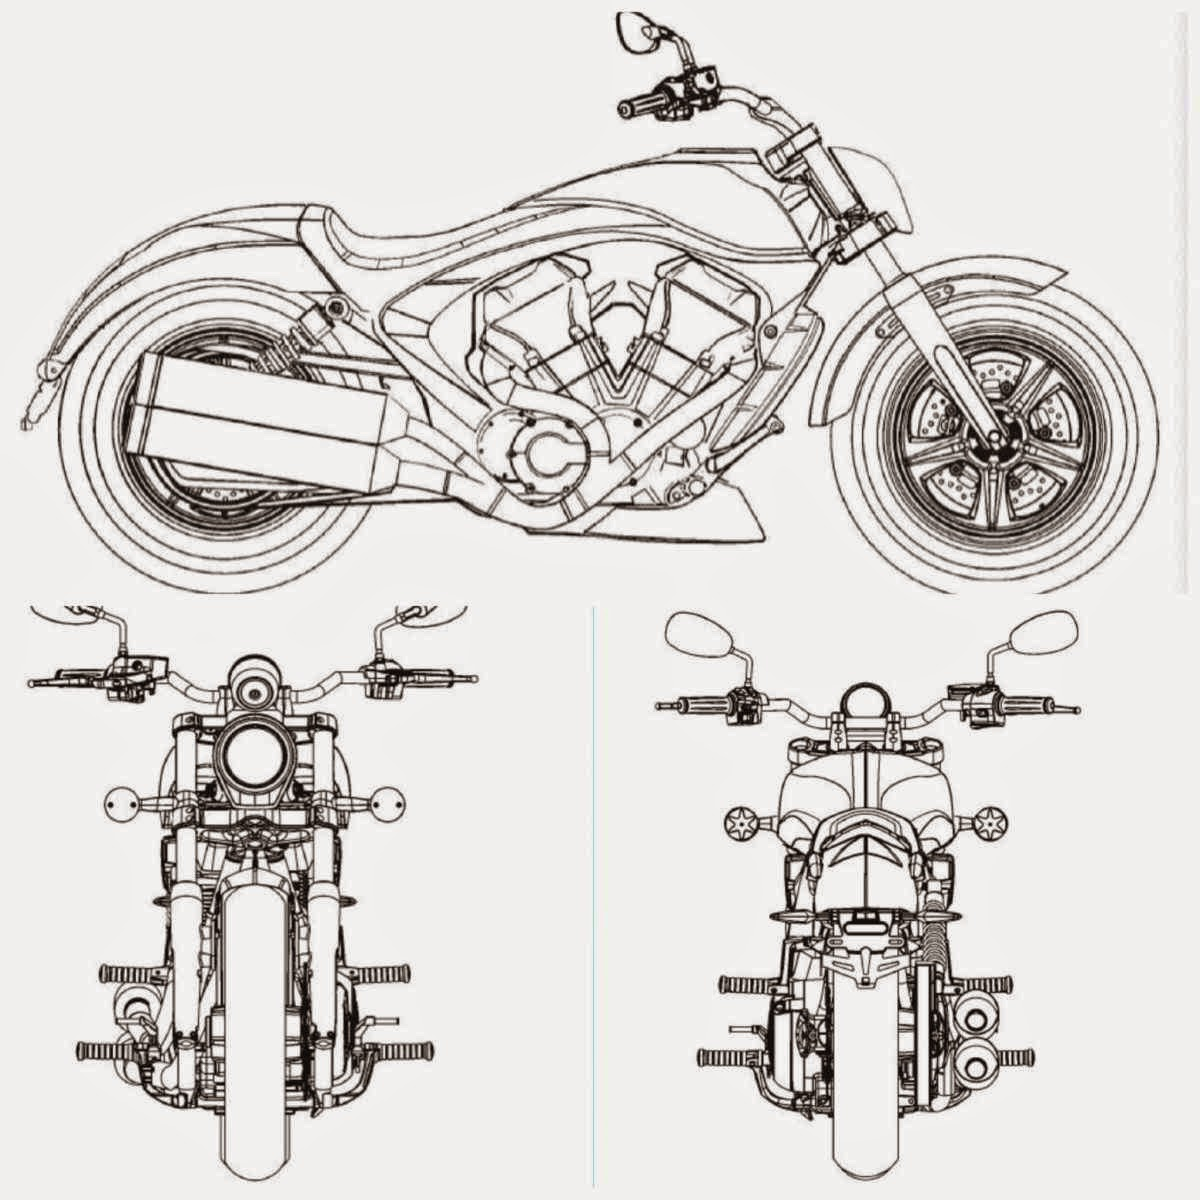 Motorcycle Design By Ryan Black Macken. Is It A Future Victory Or An  Abandoned Scout Design?